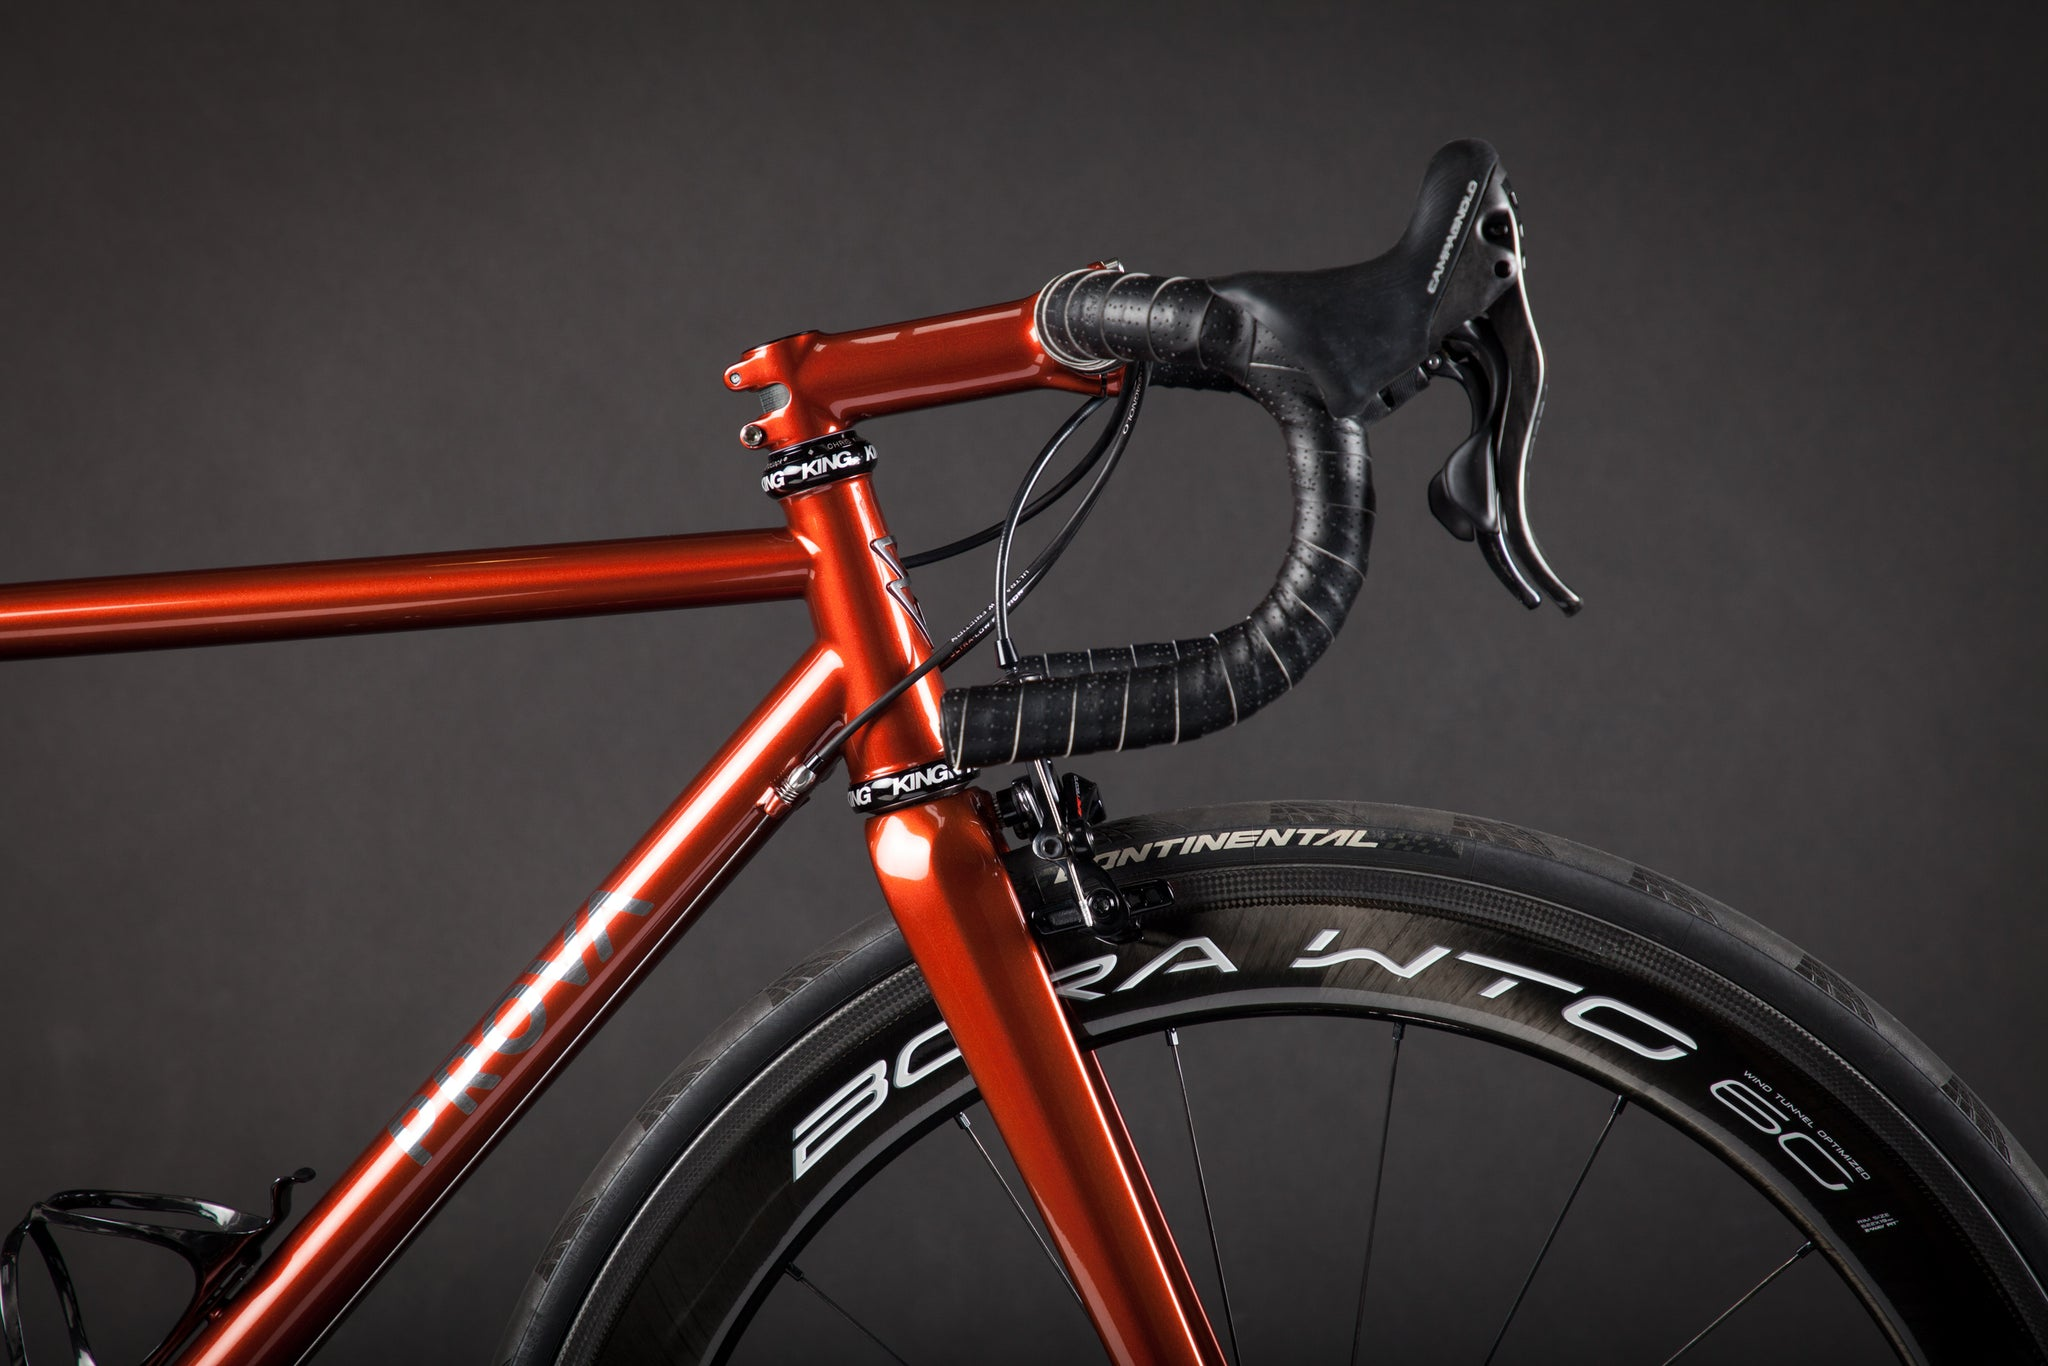 chad's prova speciale bar profile